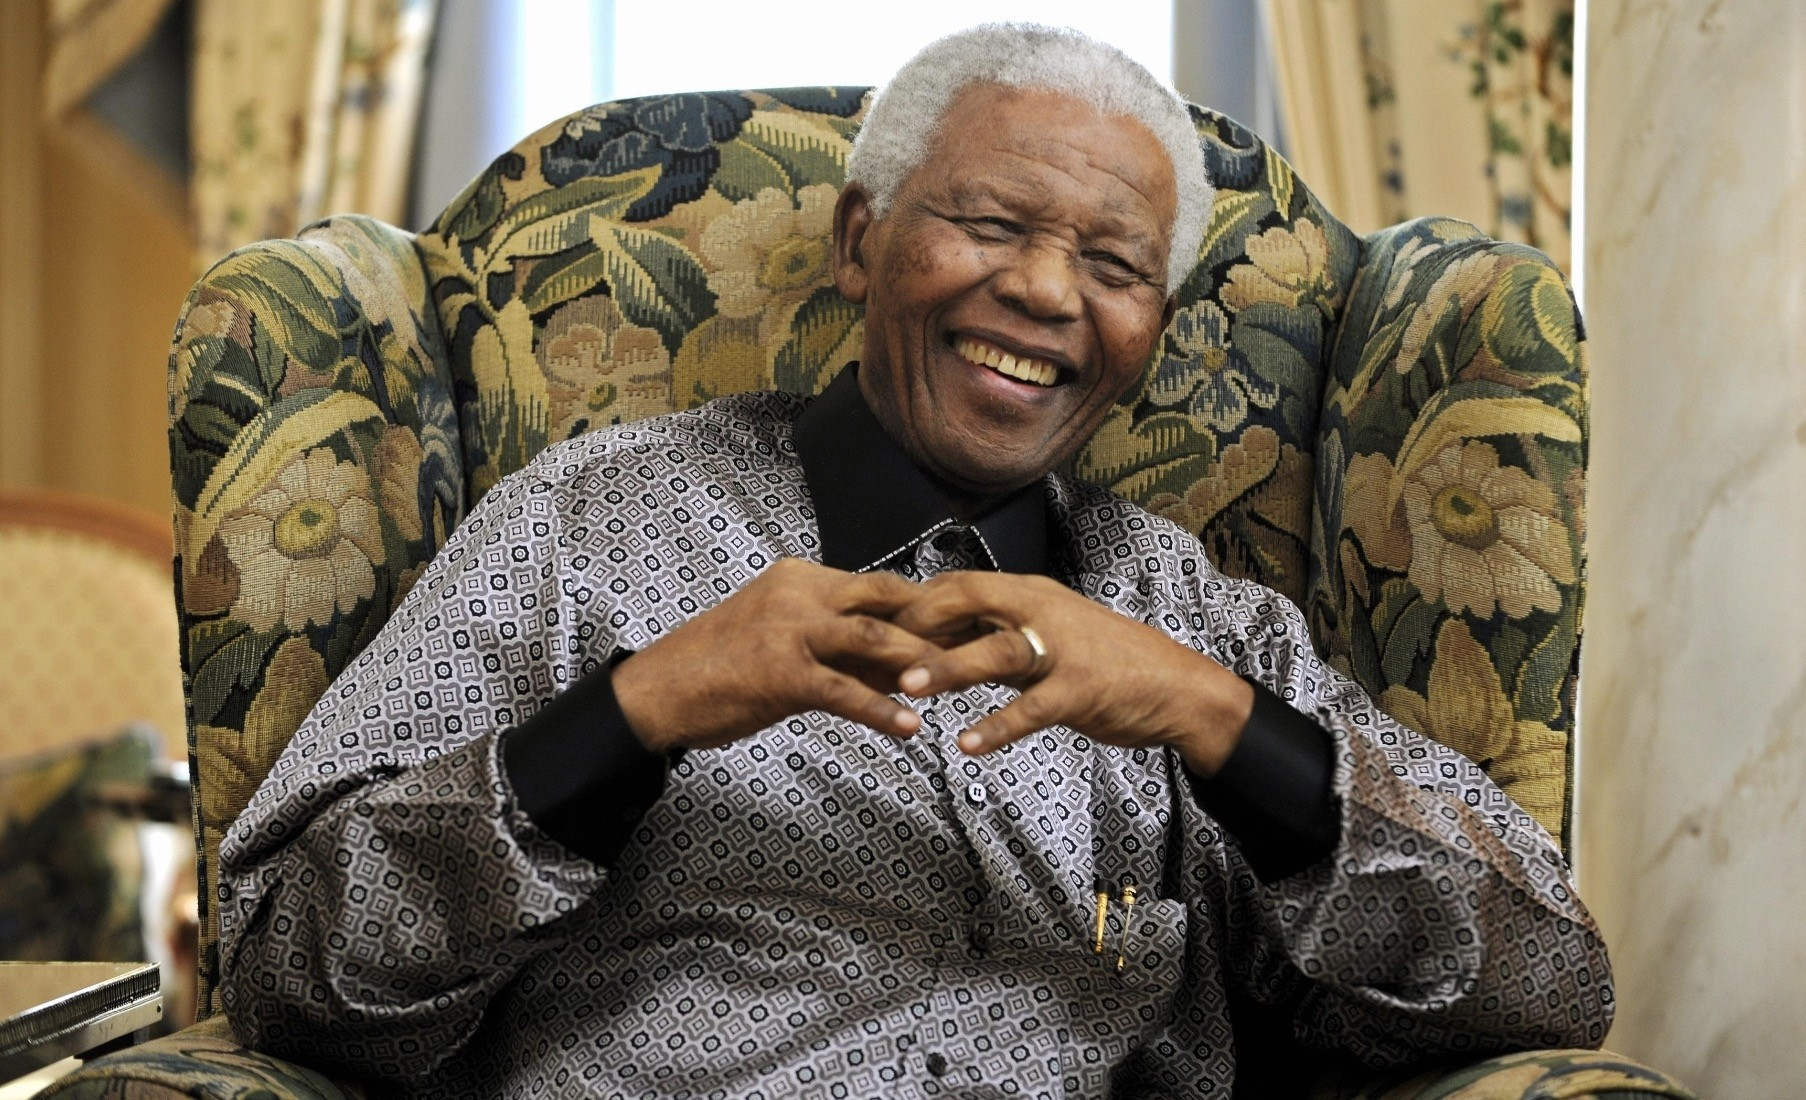 Nelson Mandela, the late president of South Africa and social justice campaigner, was commemorated around the world yesterday; many well-wishers expressed deep sorrow but also respect for his inspiring life story and legacy.